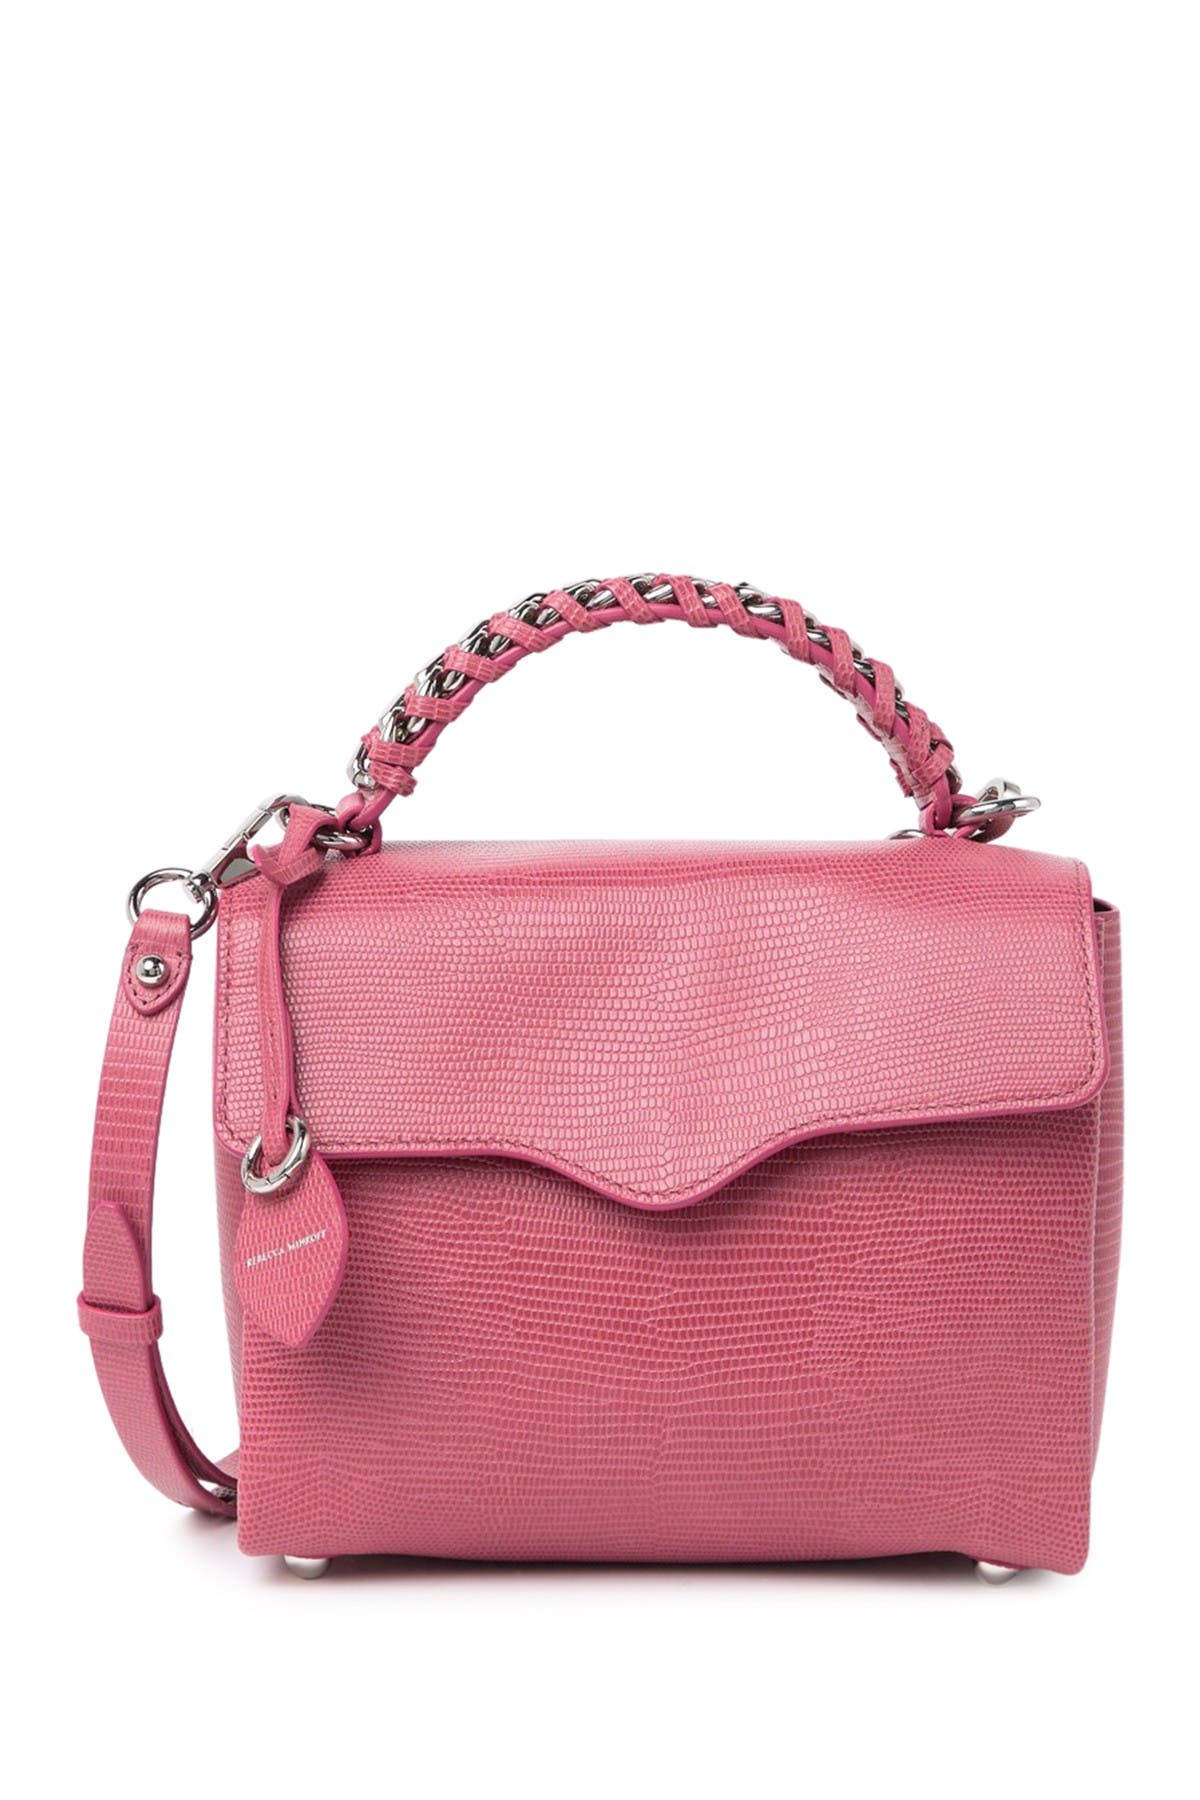 Image of Rebecca Minkoff Lizard Embossed Chain Strap Leather Satchel